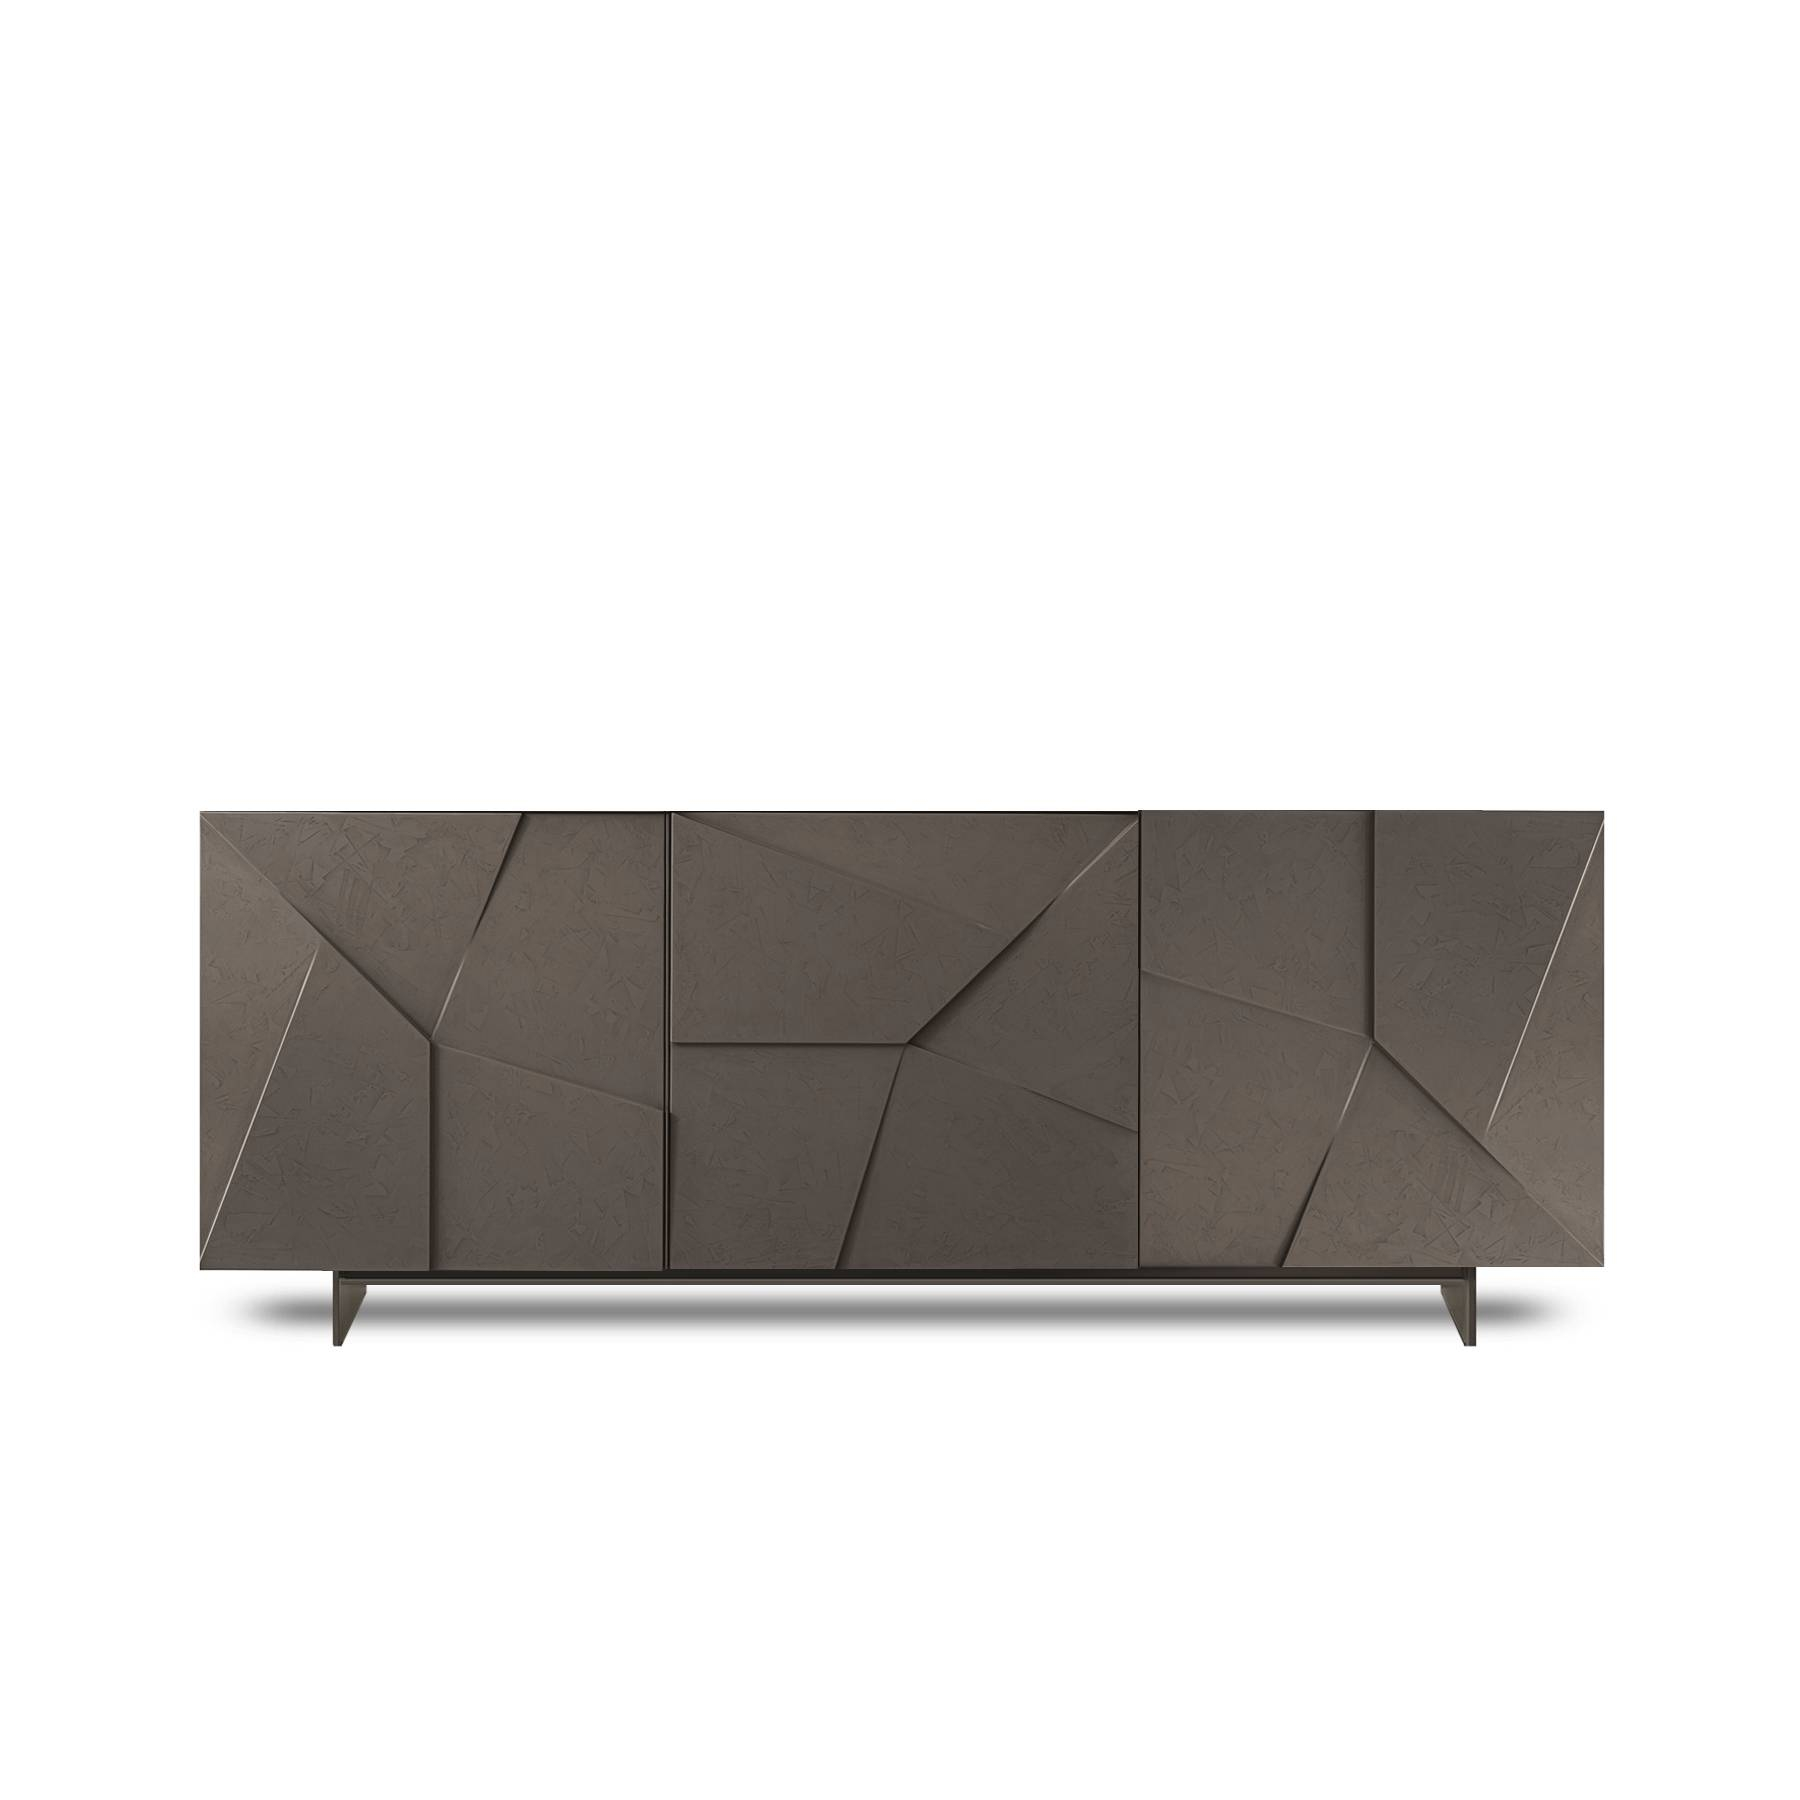 Modern Contemporary Sideboards, Storage Units My Italian Living Ltd Throughout Sideboards Contemporary (View 7 of 20)